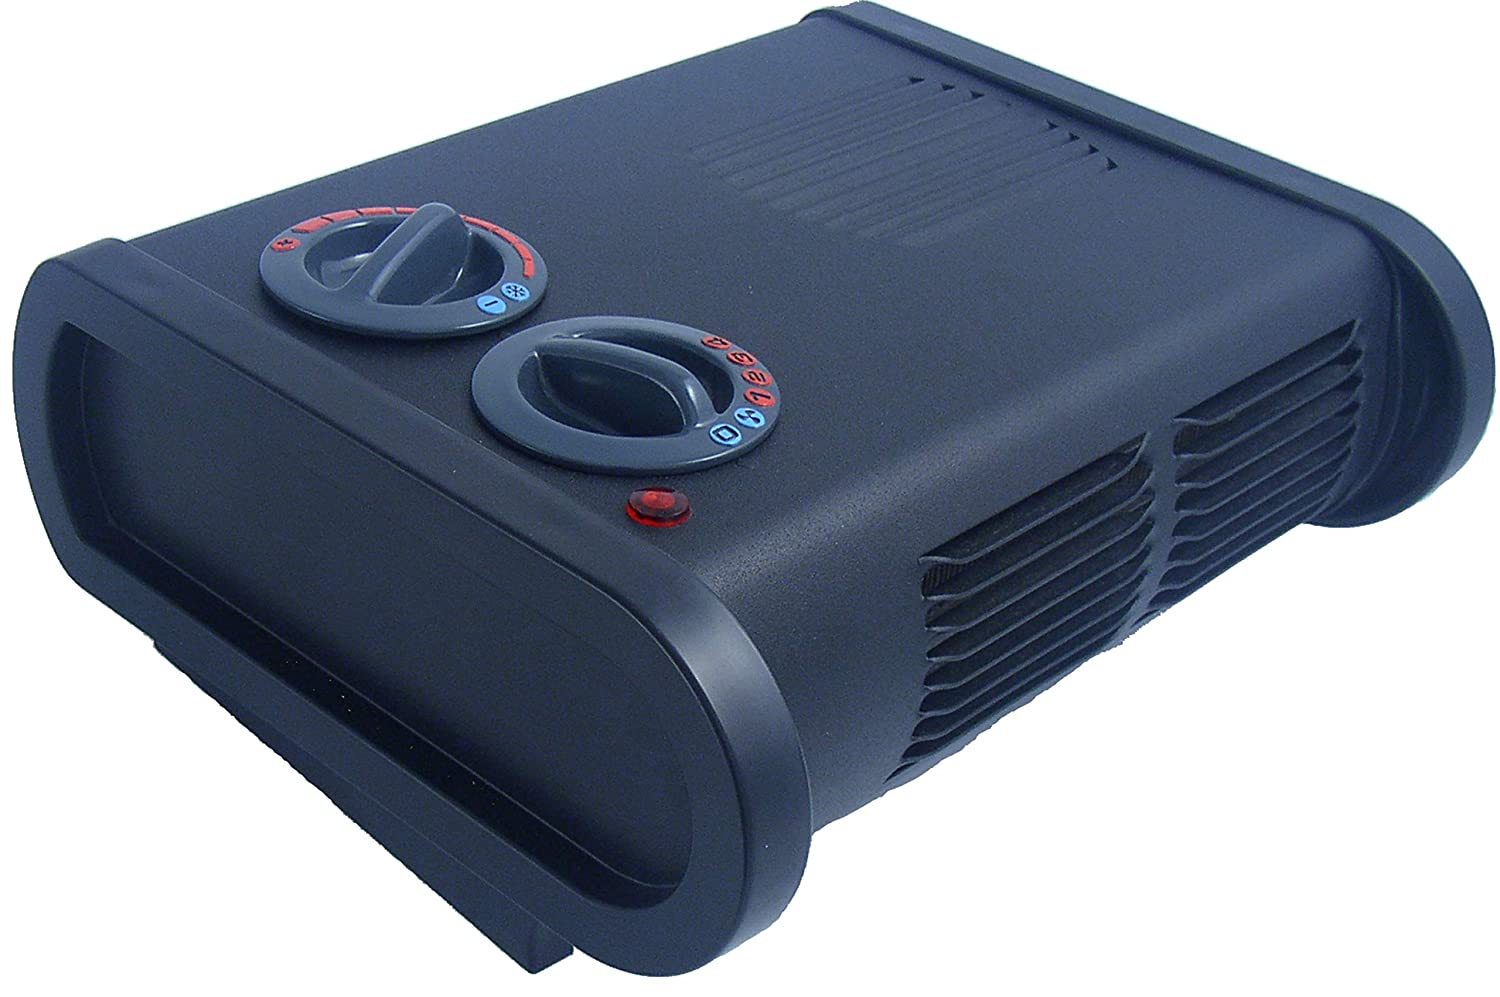 Caframo 9206CABBX True North Deluxe 9206 120Vac High Performance Space Heater - 600, 900, 1500 W B004473UK2